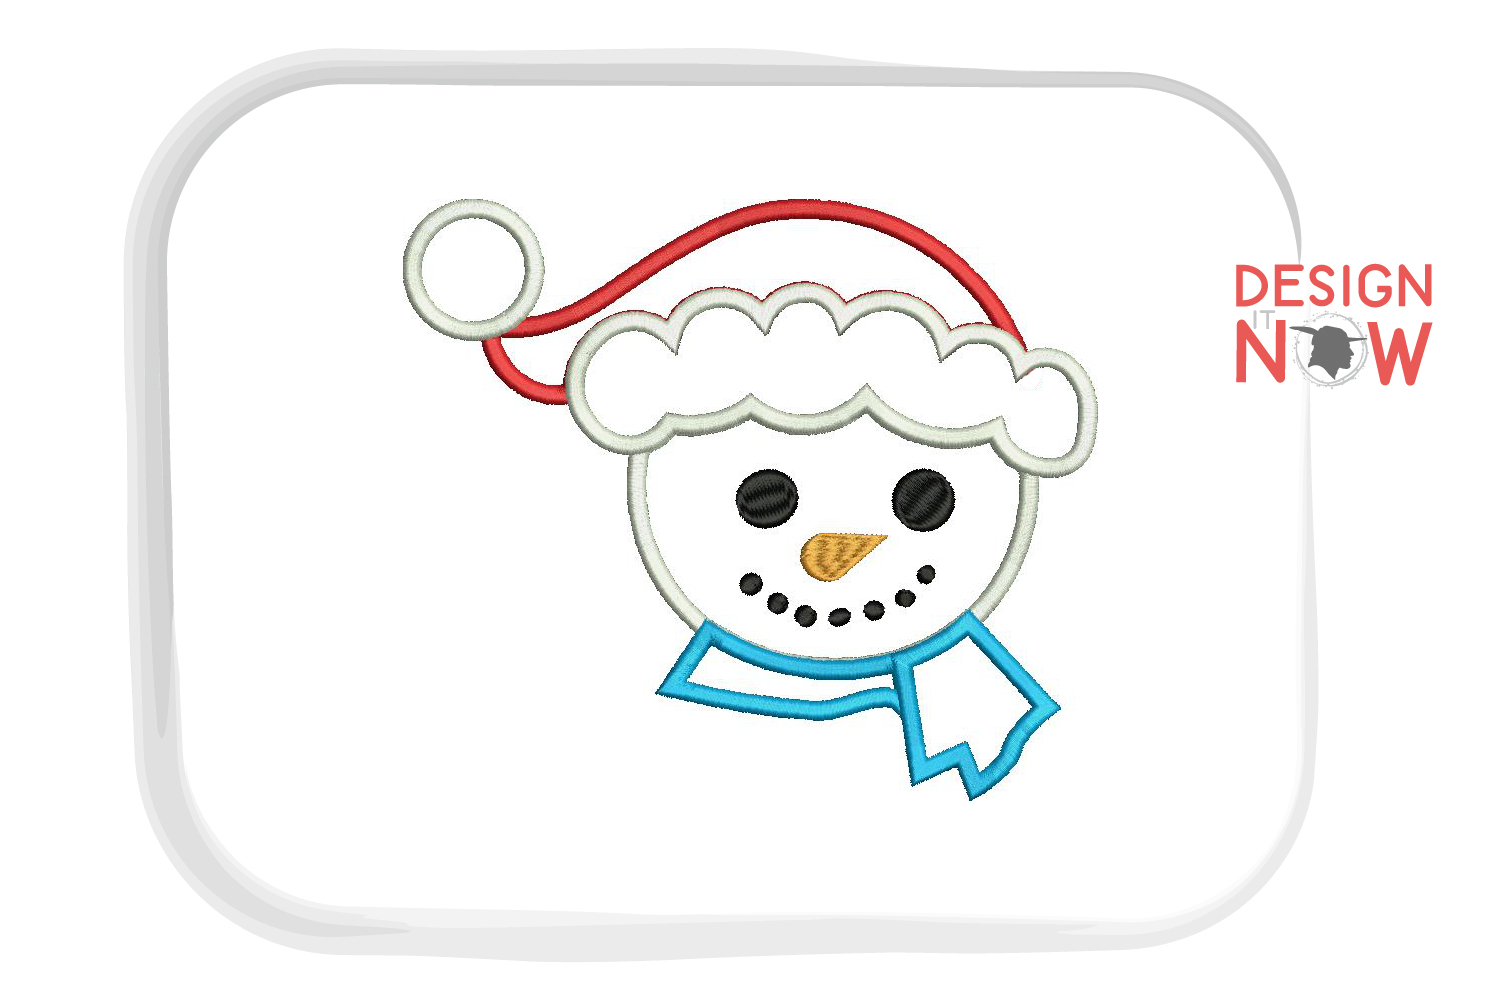 Snowman Applique Embroidery Design, Santa Claus Embroidery example image 2